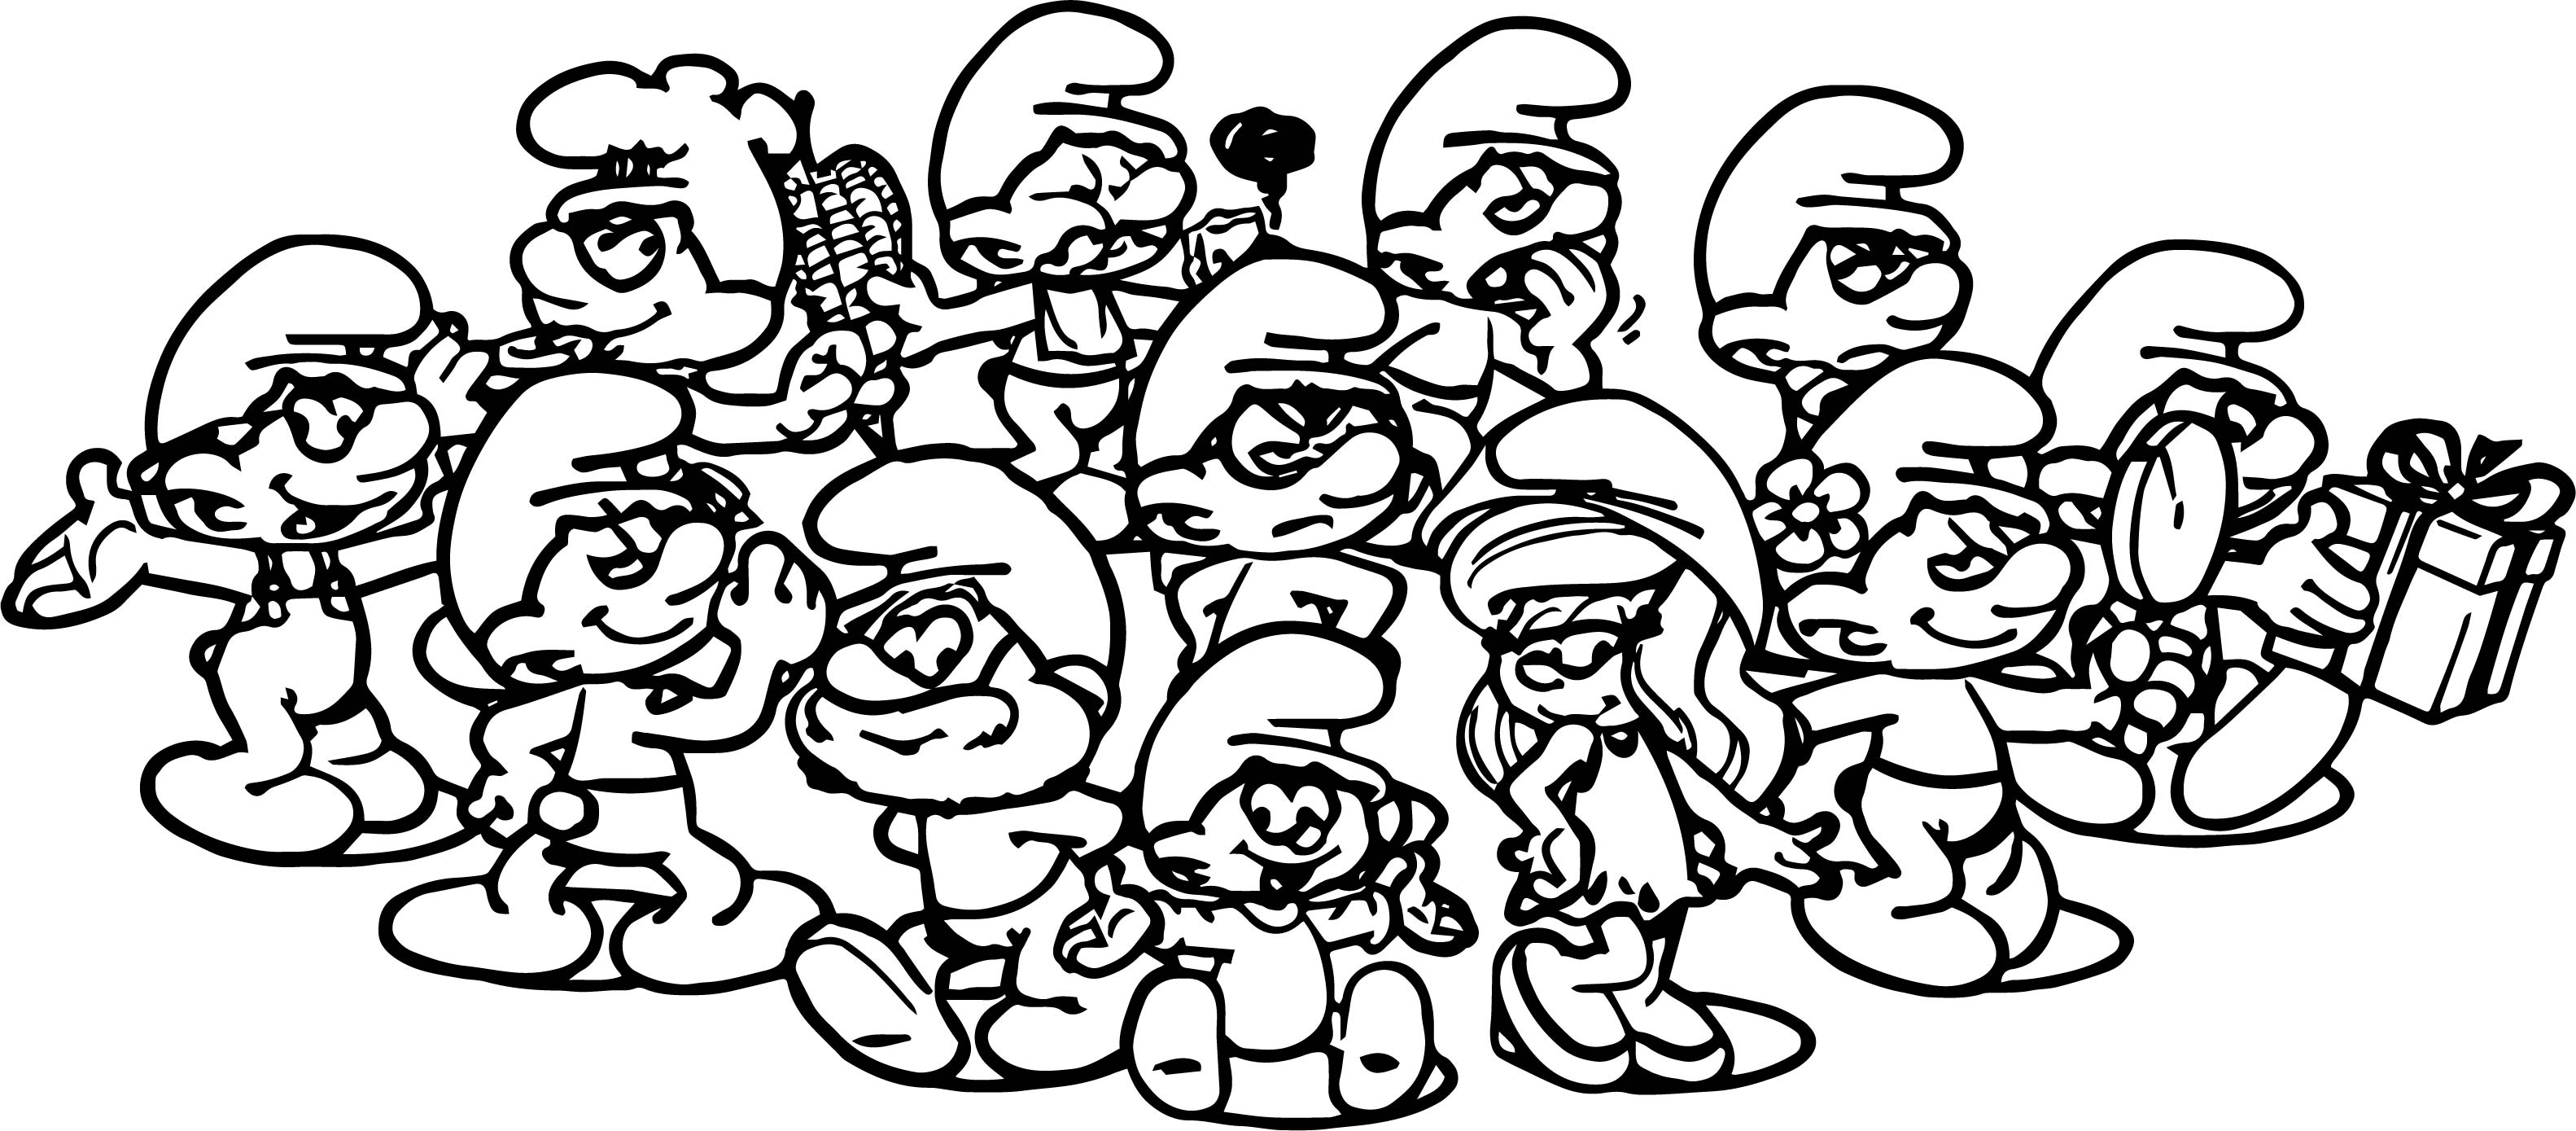 Smurf Family Coloring Page